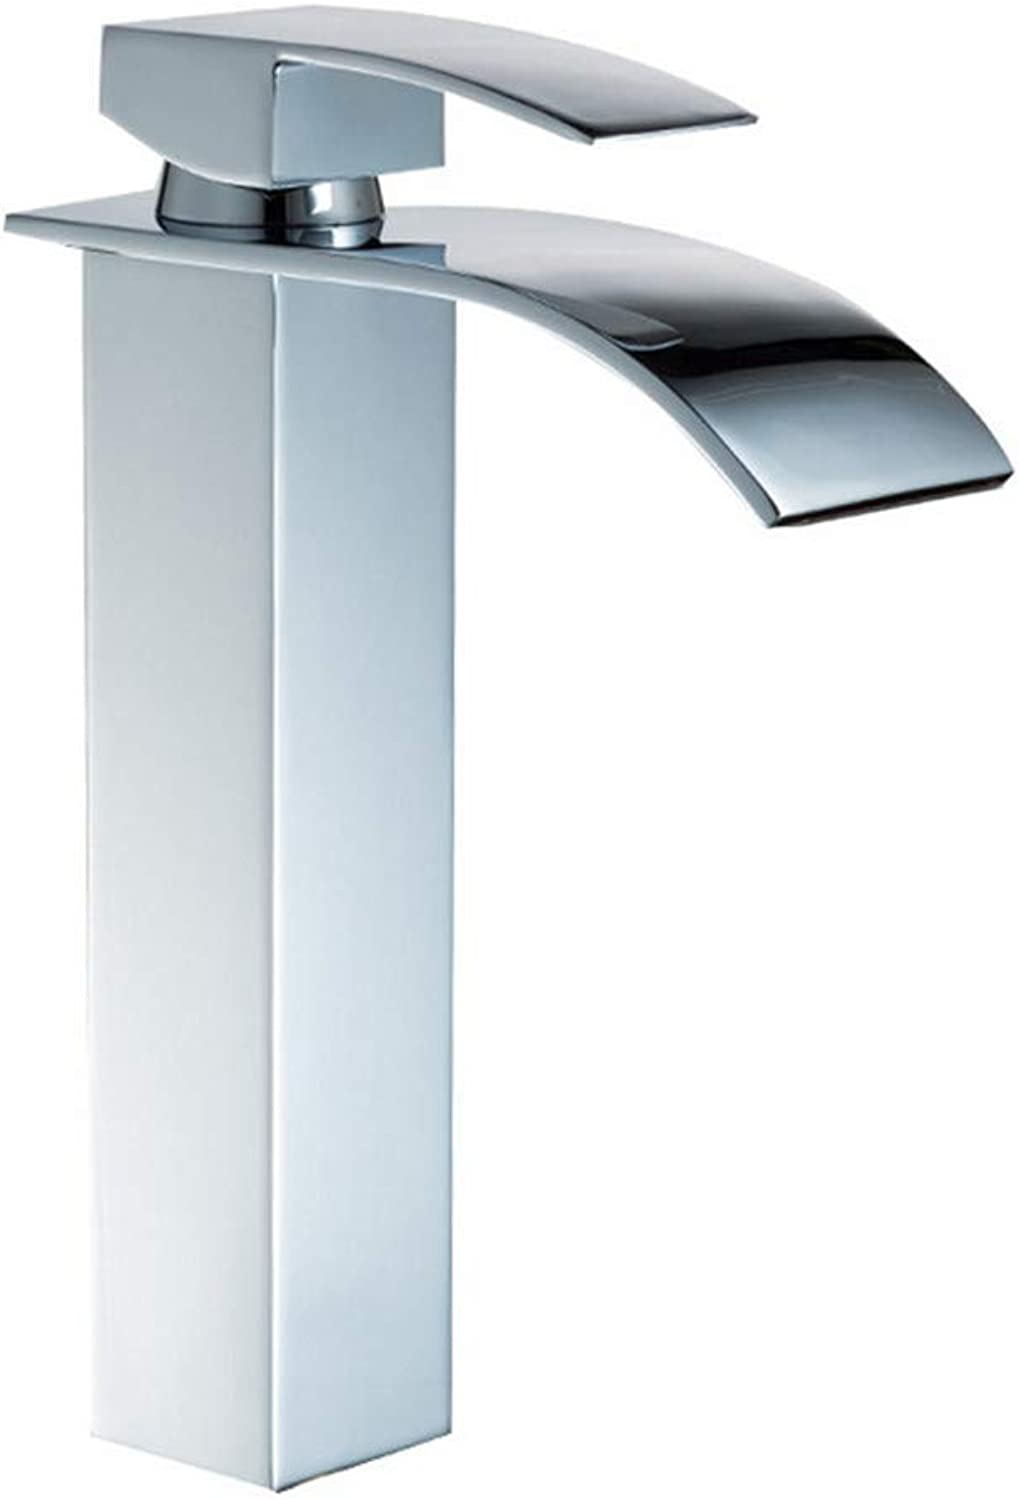 XINXI HOME Bathroom Sink Taps Chrome Waterfall Basin Faucet Square Single Hole Washbasin Hot And Cold Water Mixer